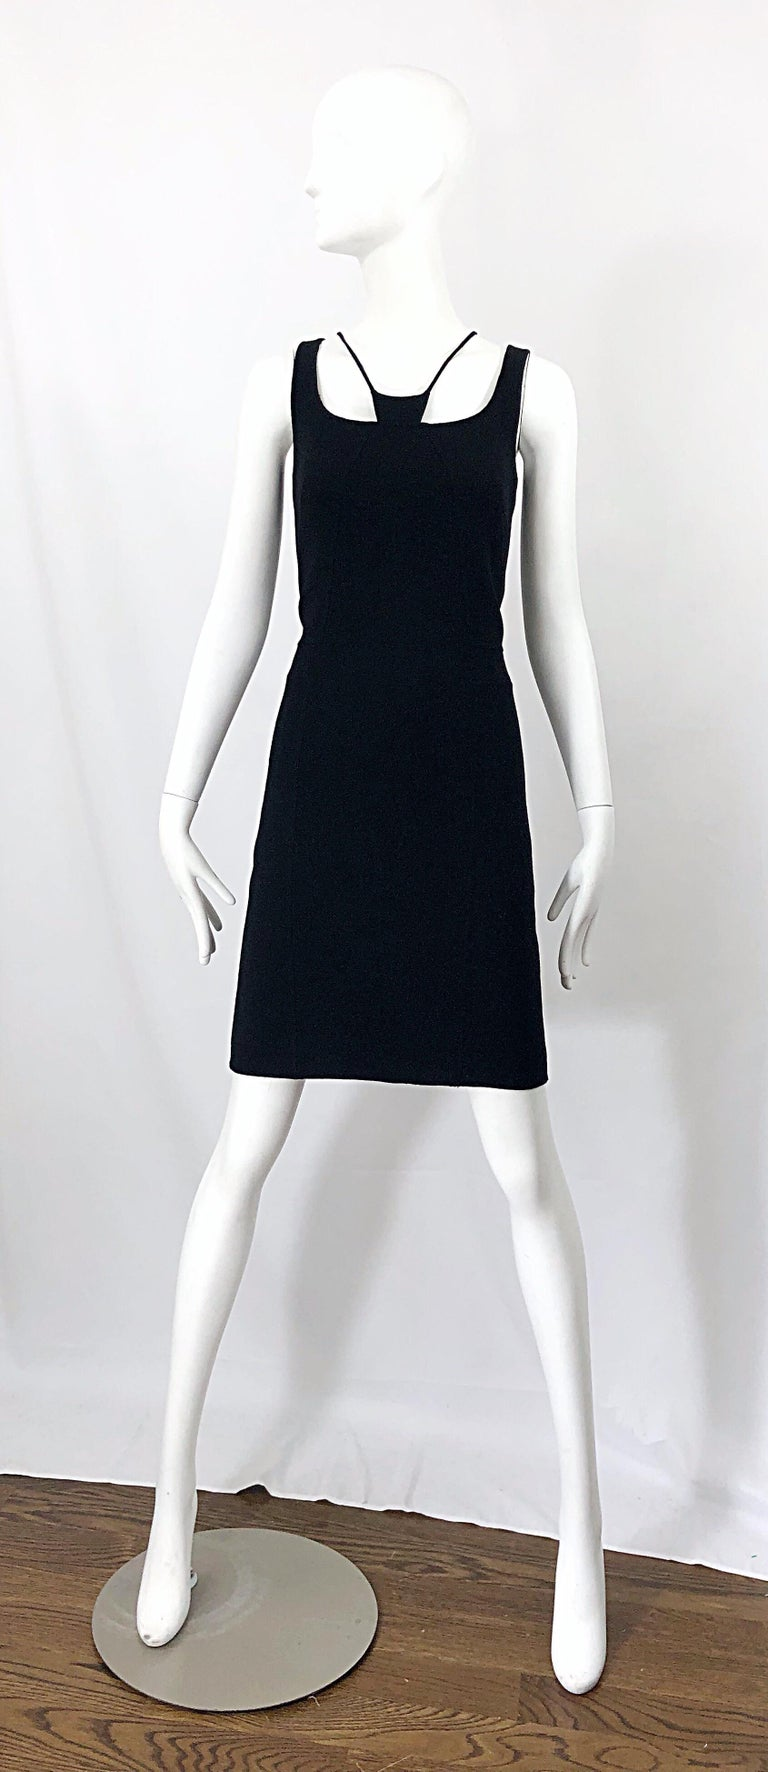 Rare early work by CHADO RALPH RUCCI! The classic little black dress, with a slight edge. Bondage inspired neck. Hidden curved zipper up a side back seam. Lightweight wool is perfect for any time of year. Fully lined. Couture quality one would